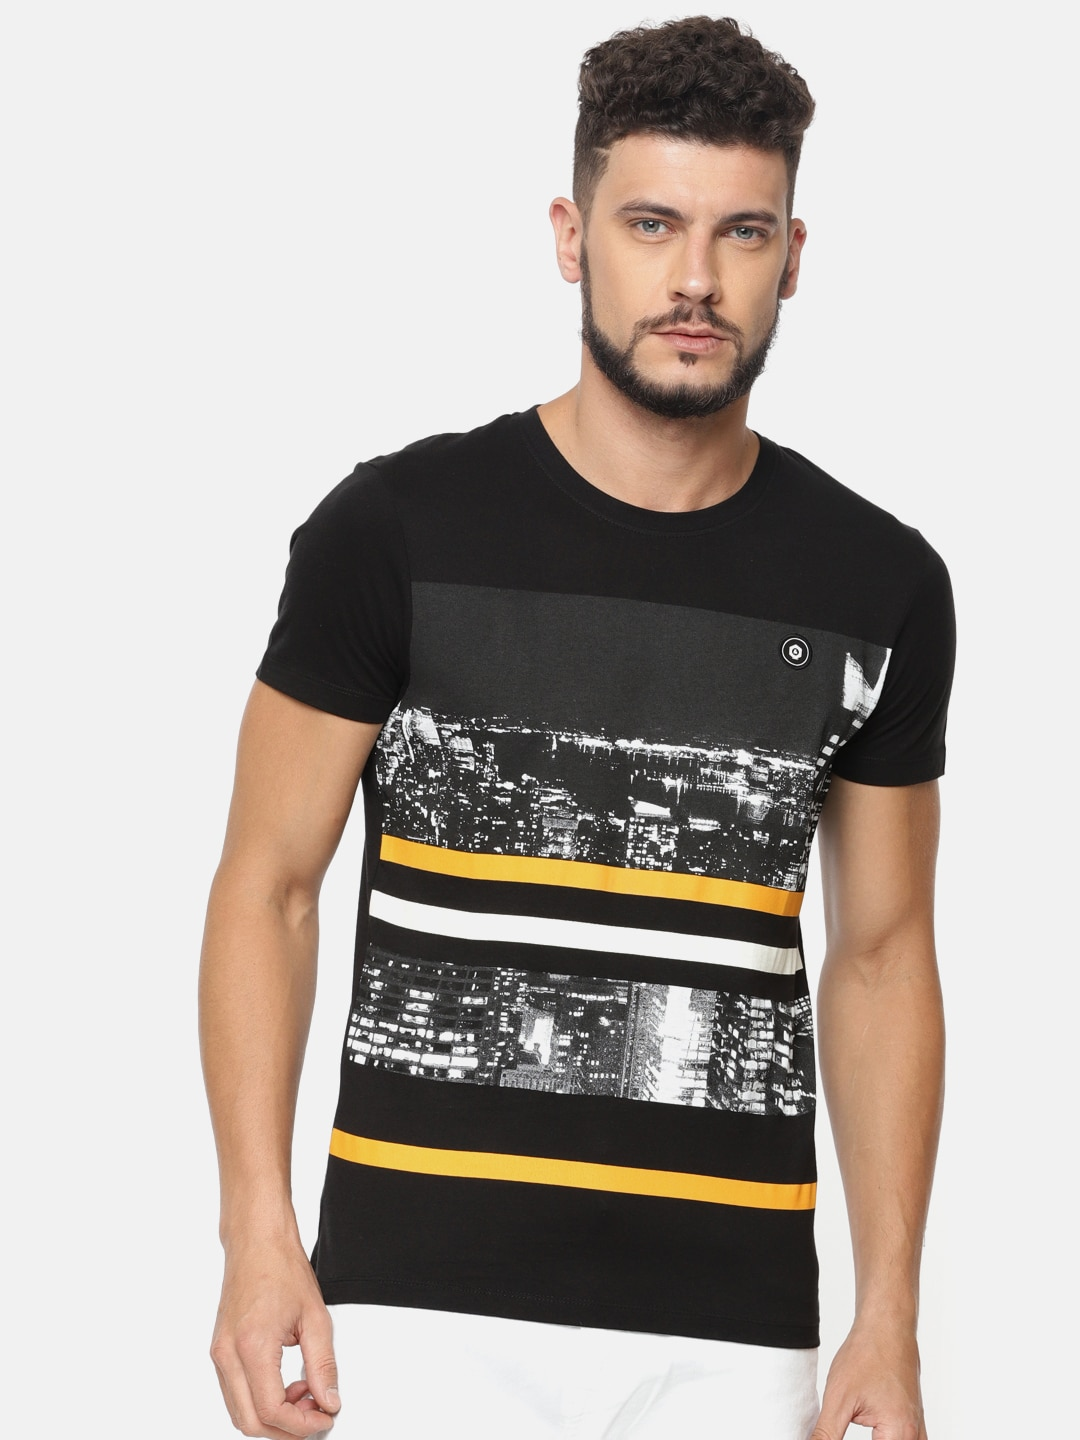 dfaa13c1e Men T-shirts - Buy T-shirt for Men Online in India